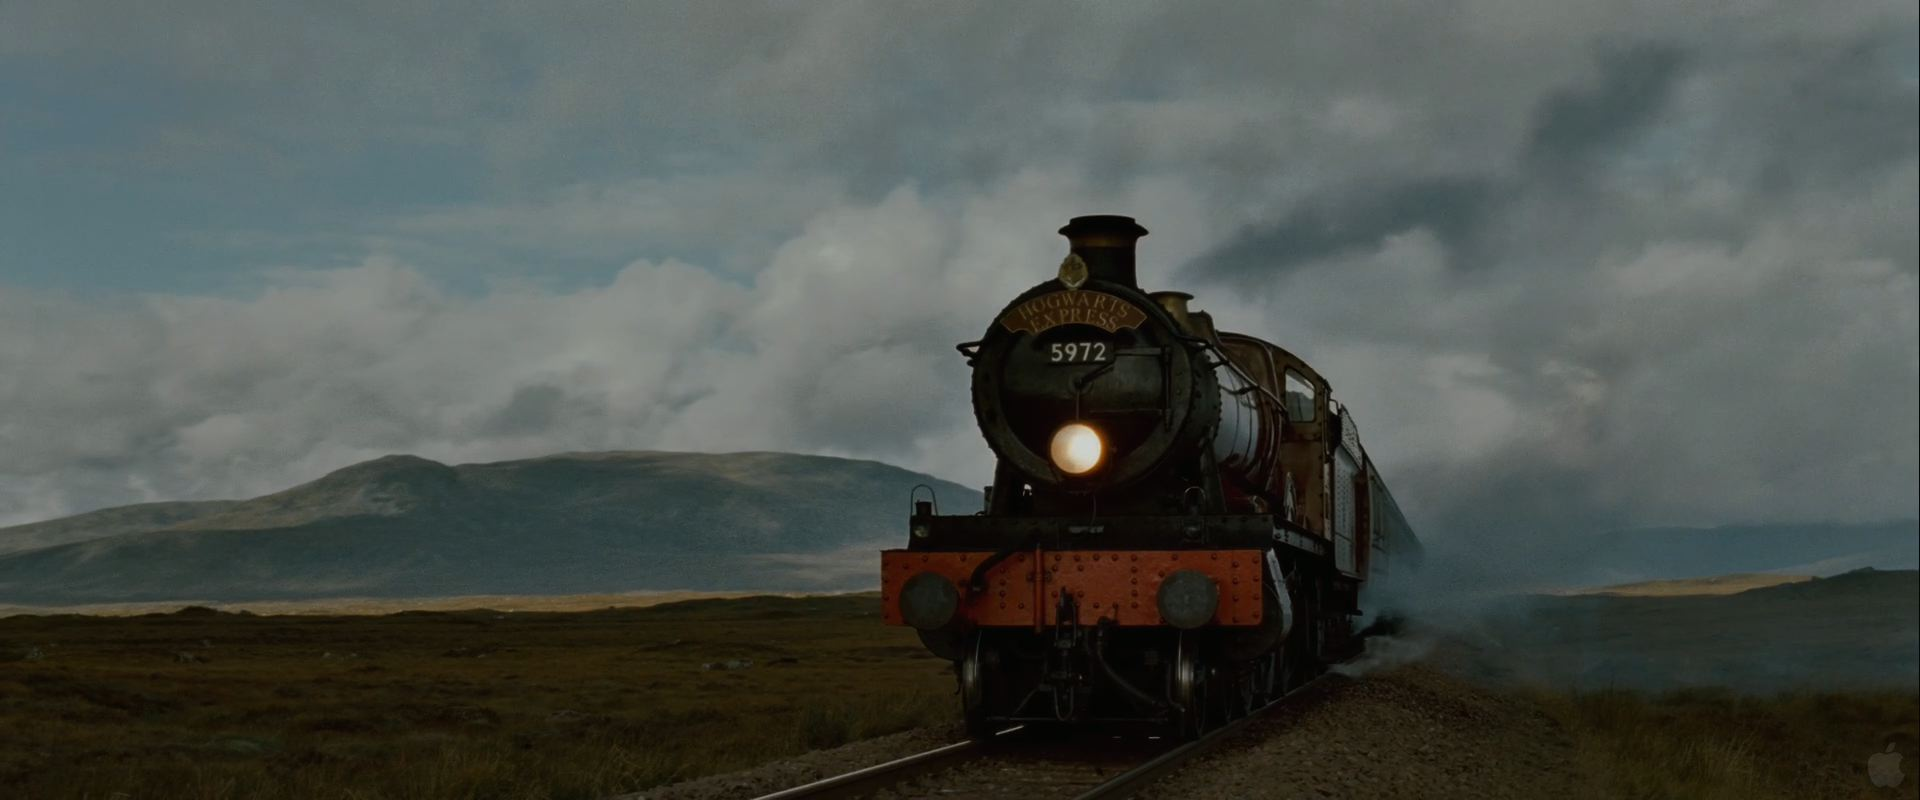 Hogwarts Express Train From Harry Potter And The Deathly Hallows Wallpaper